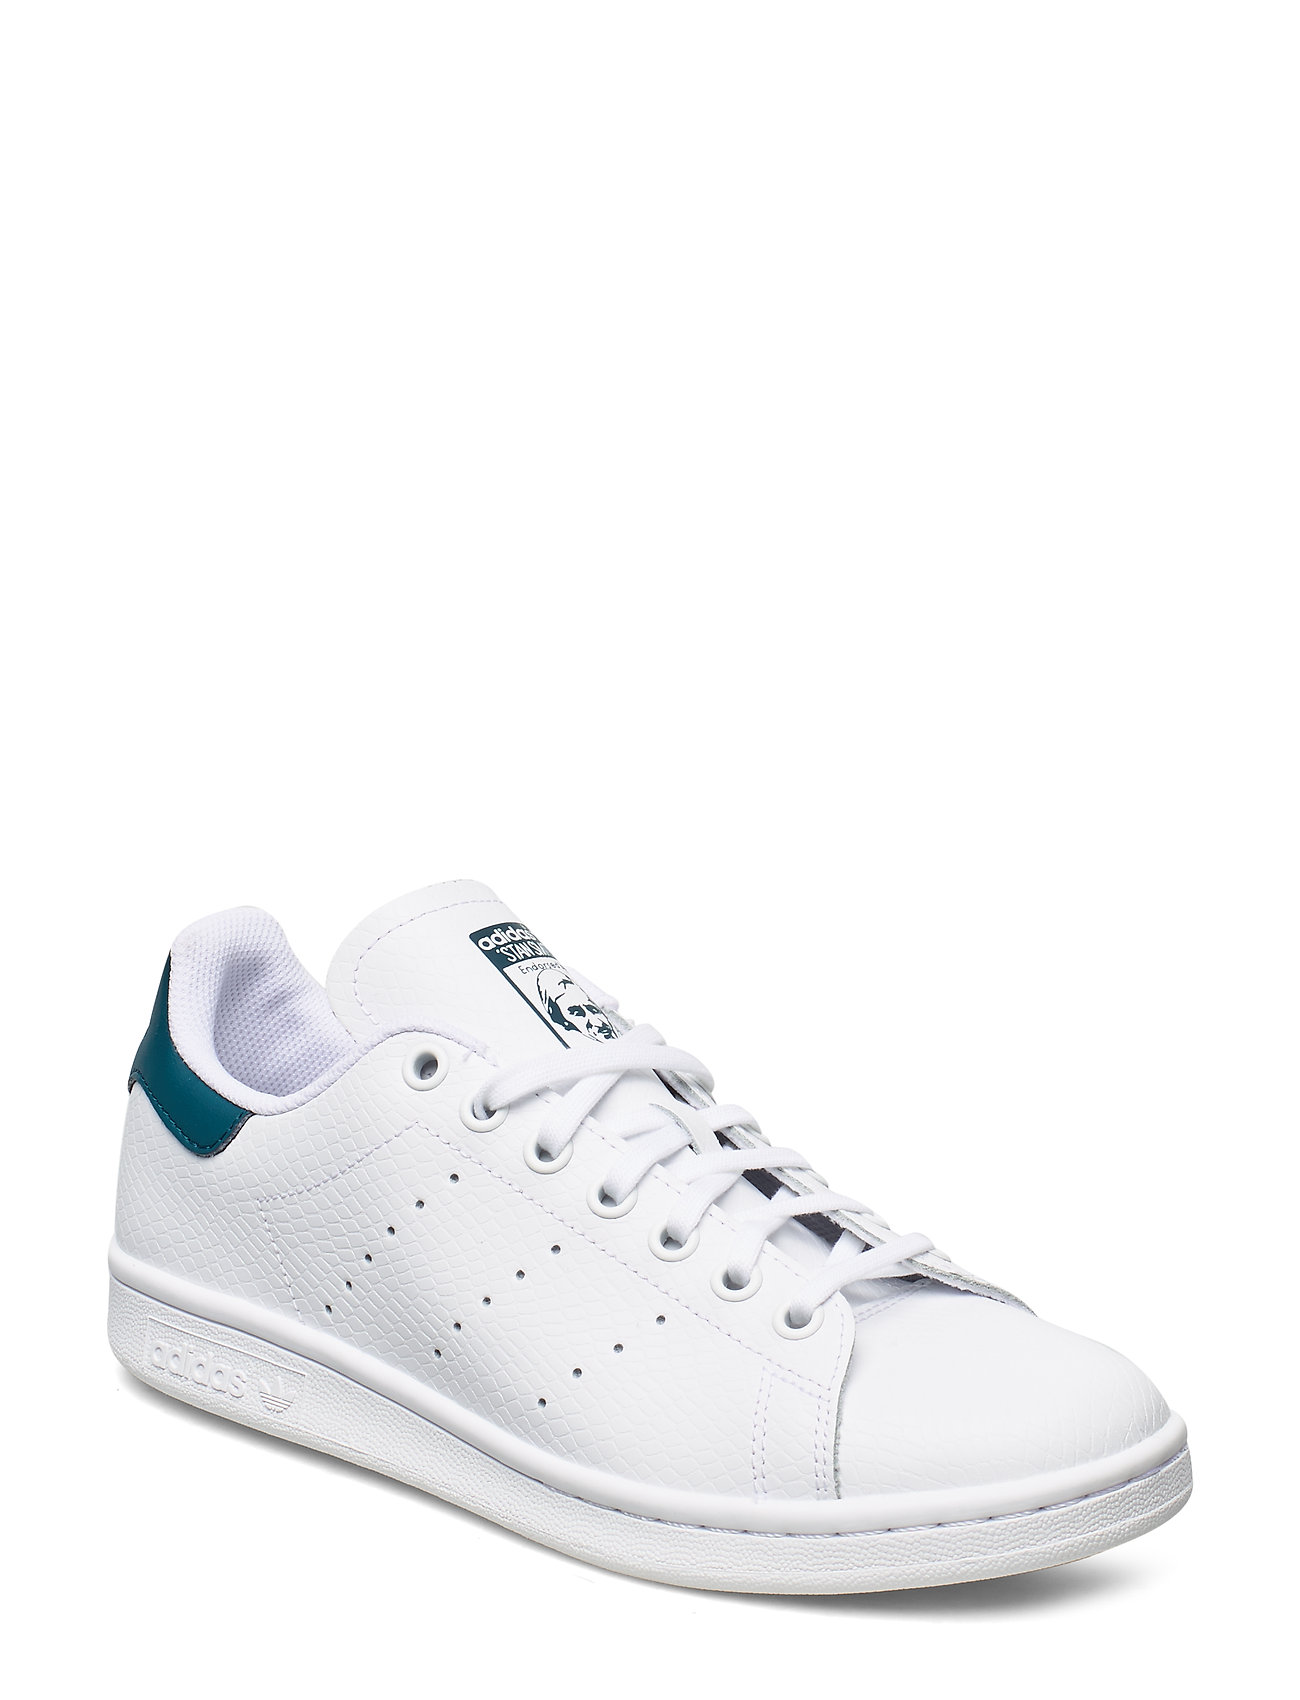 adidas Originals STAN SMITH J - FTWWHT/FTWWHT/TECMIN